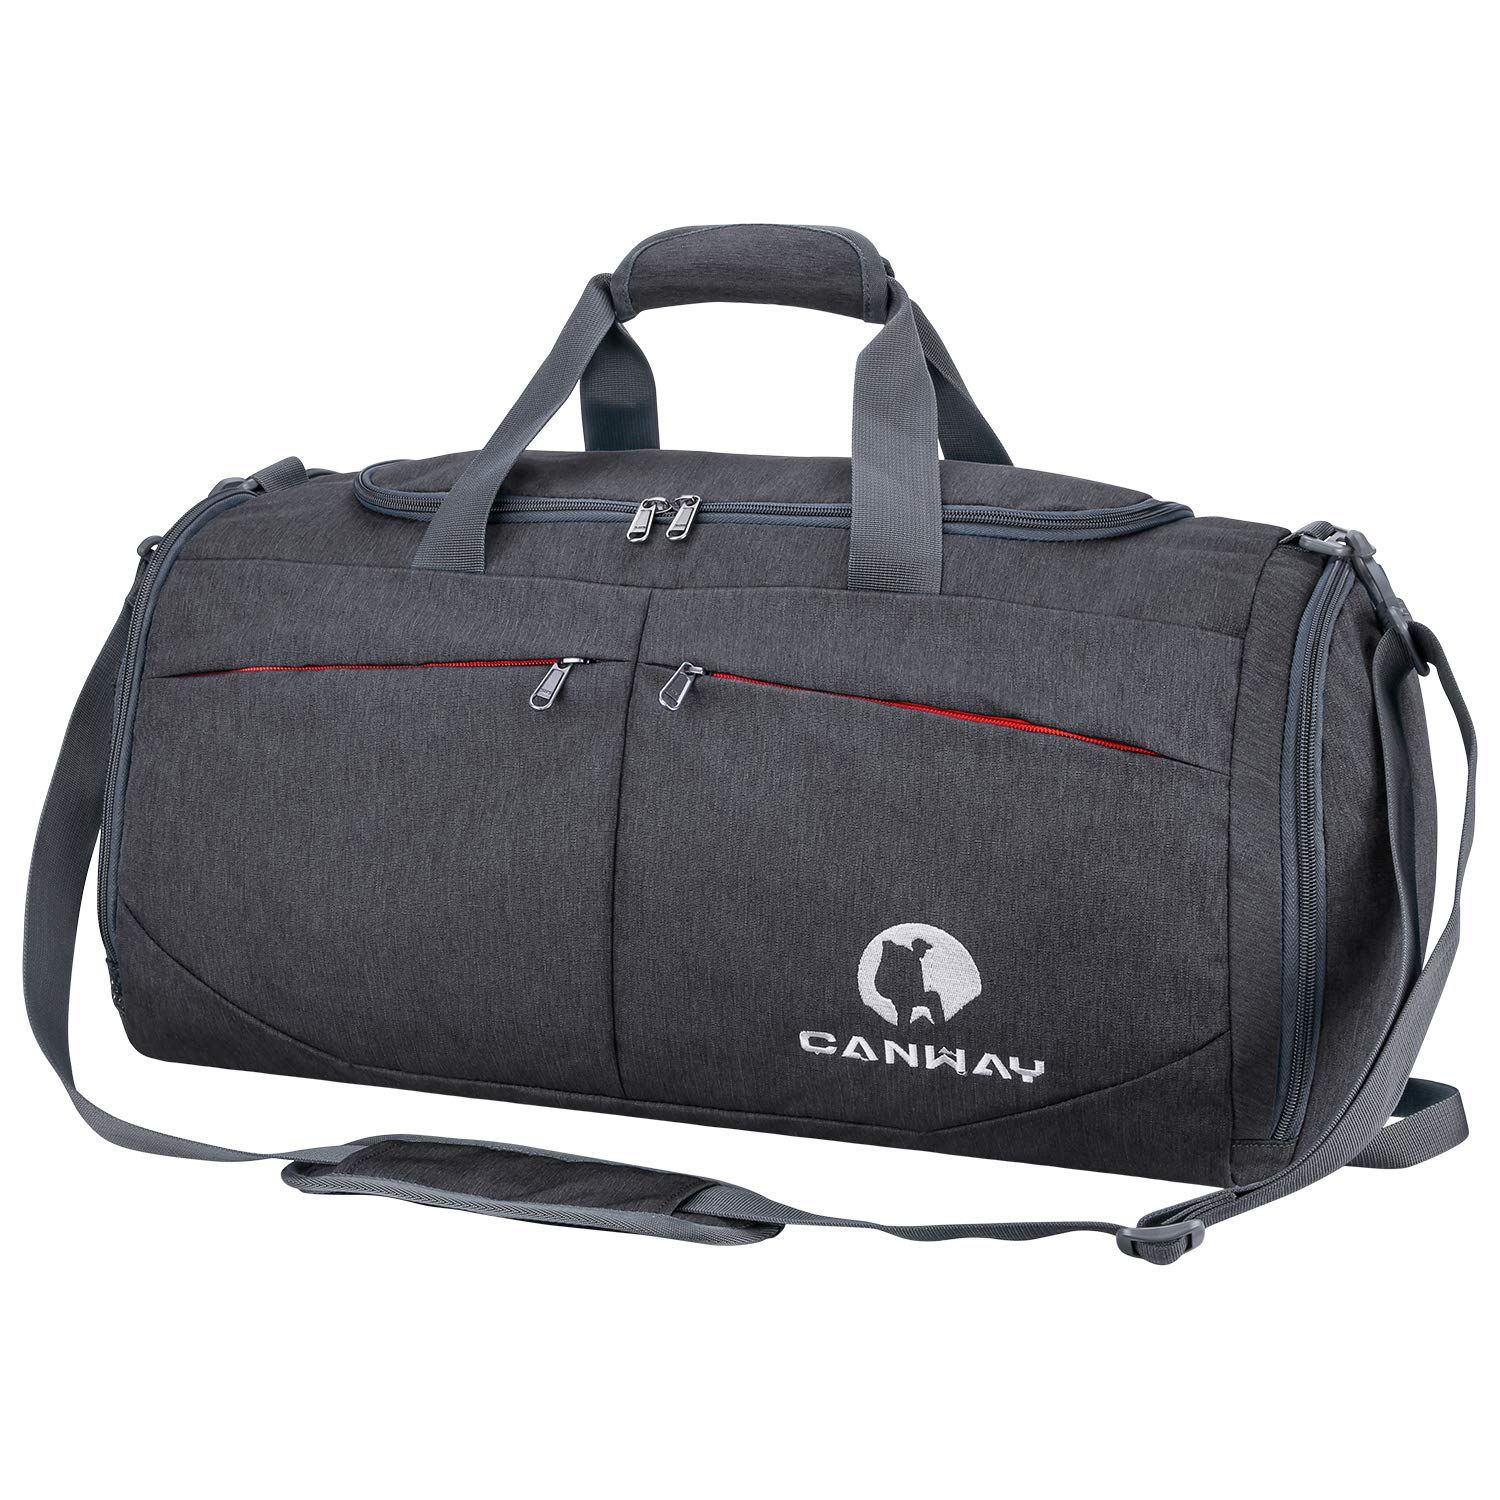 Canway Sports Gym Bag, Travel Duffel bag with Wet Pocket & Shoes Compartment for men women, 45L, Lightweight by CANWAY